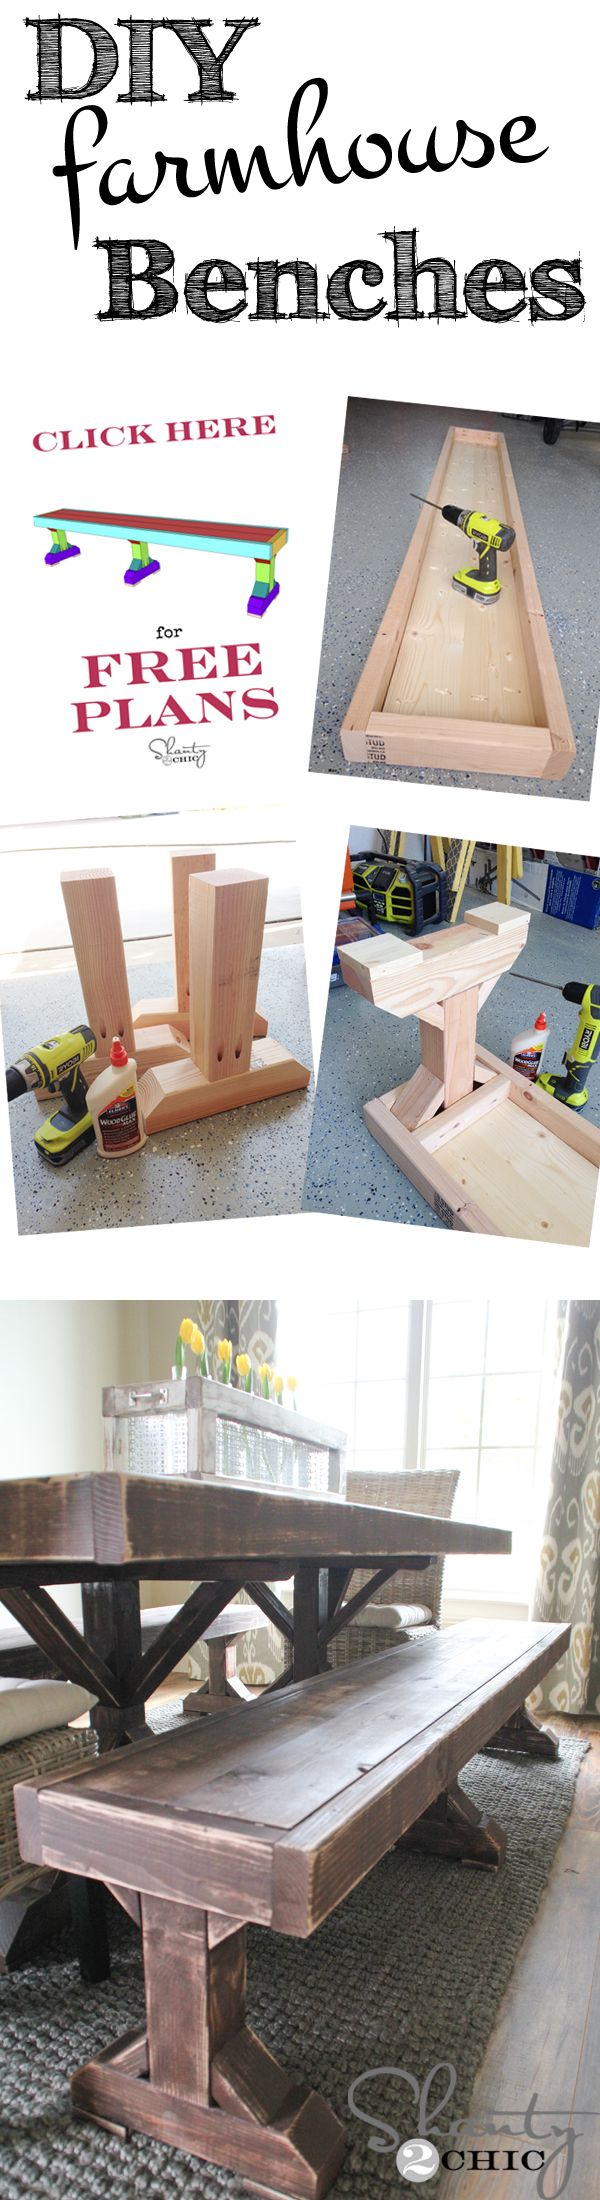 DIY Dining Table Benches - Free Plans at www.shanty-2-chic.com